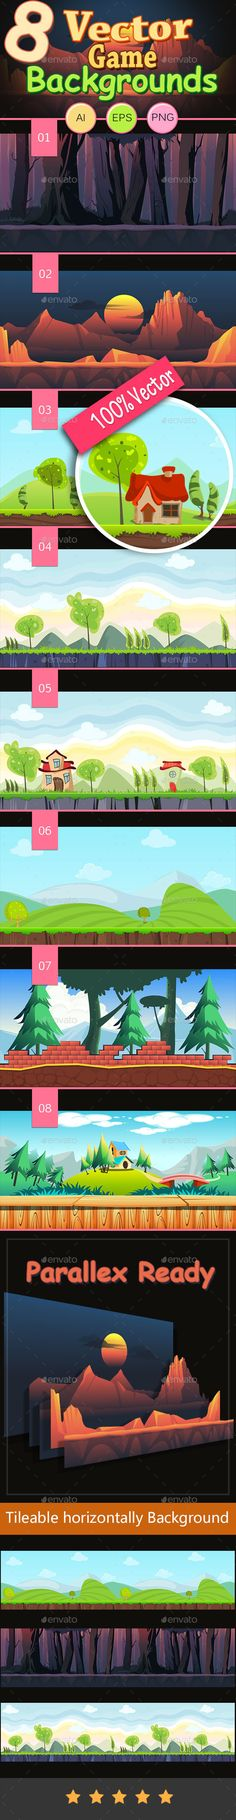 8 Vector Game Backgrounds — Vector EPS #peak #scroller • Available here → https://graphicriver.net/item/8-vector-game-backgrounds/9932437?ref=pxcr